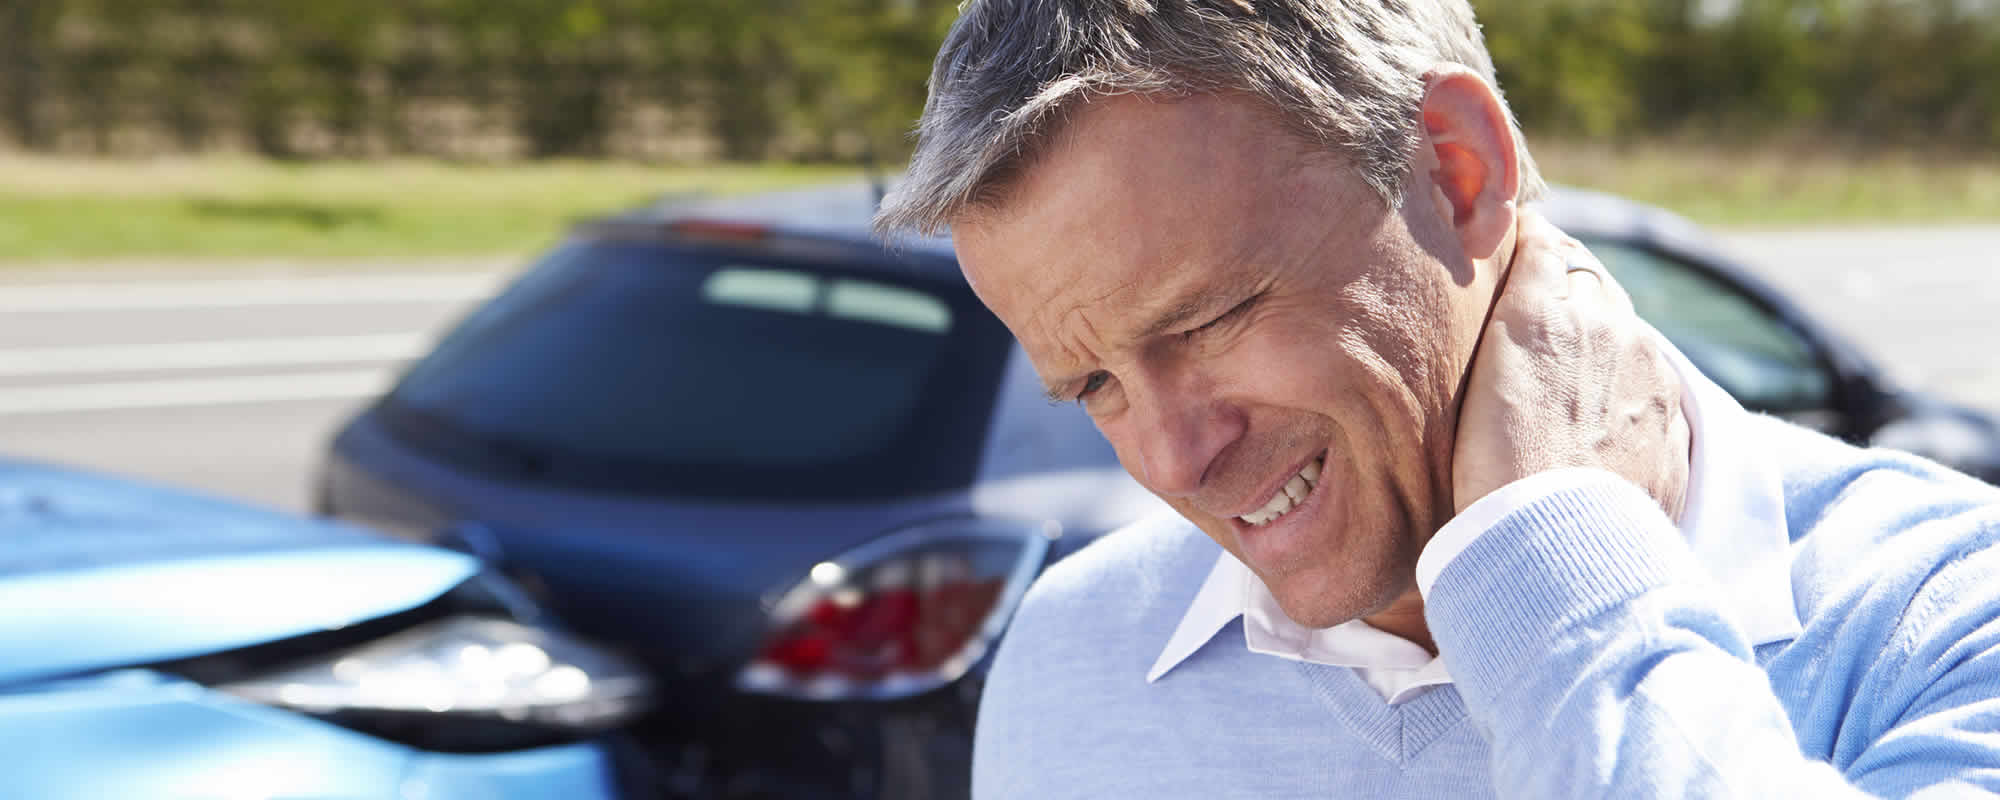 Get help for your <span style='color:#fff;'>Car Accident Injury</span>